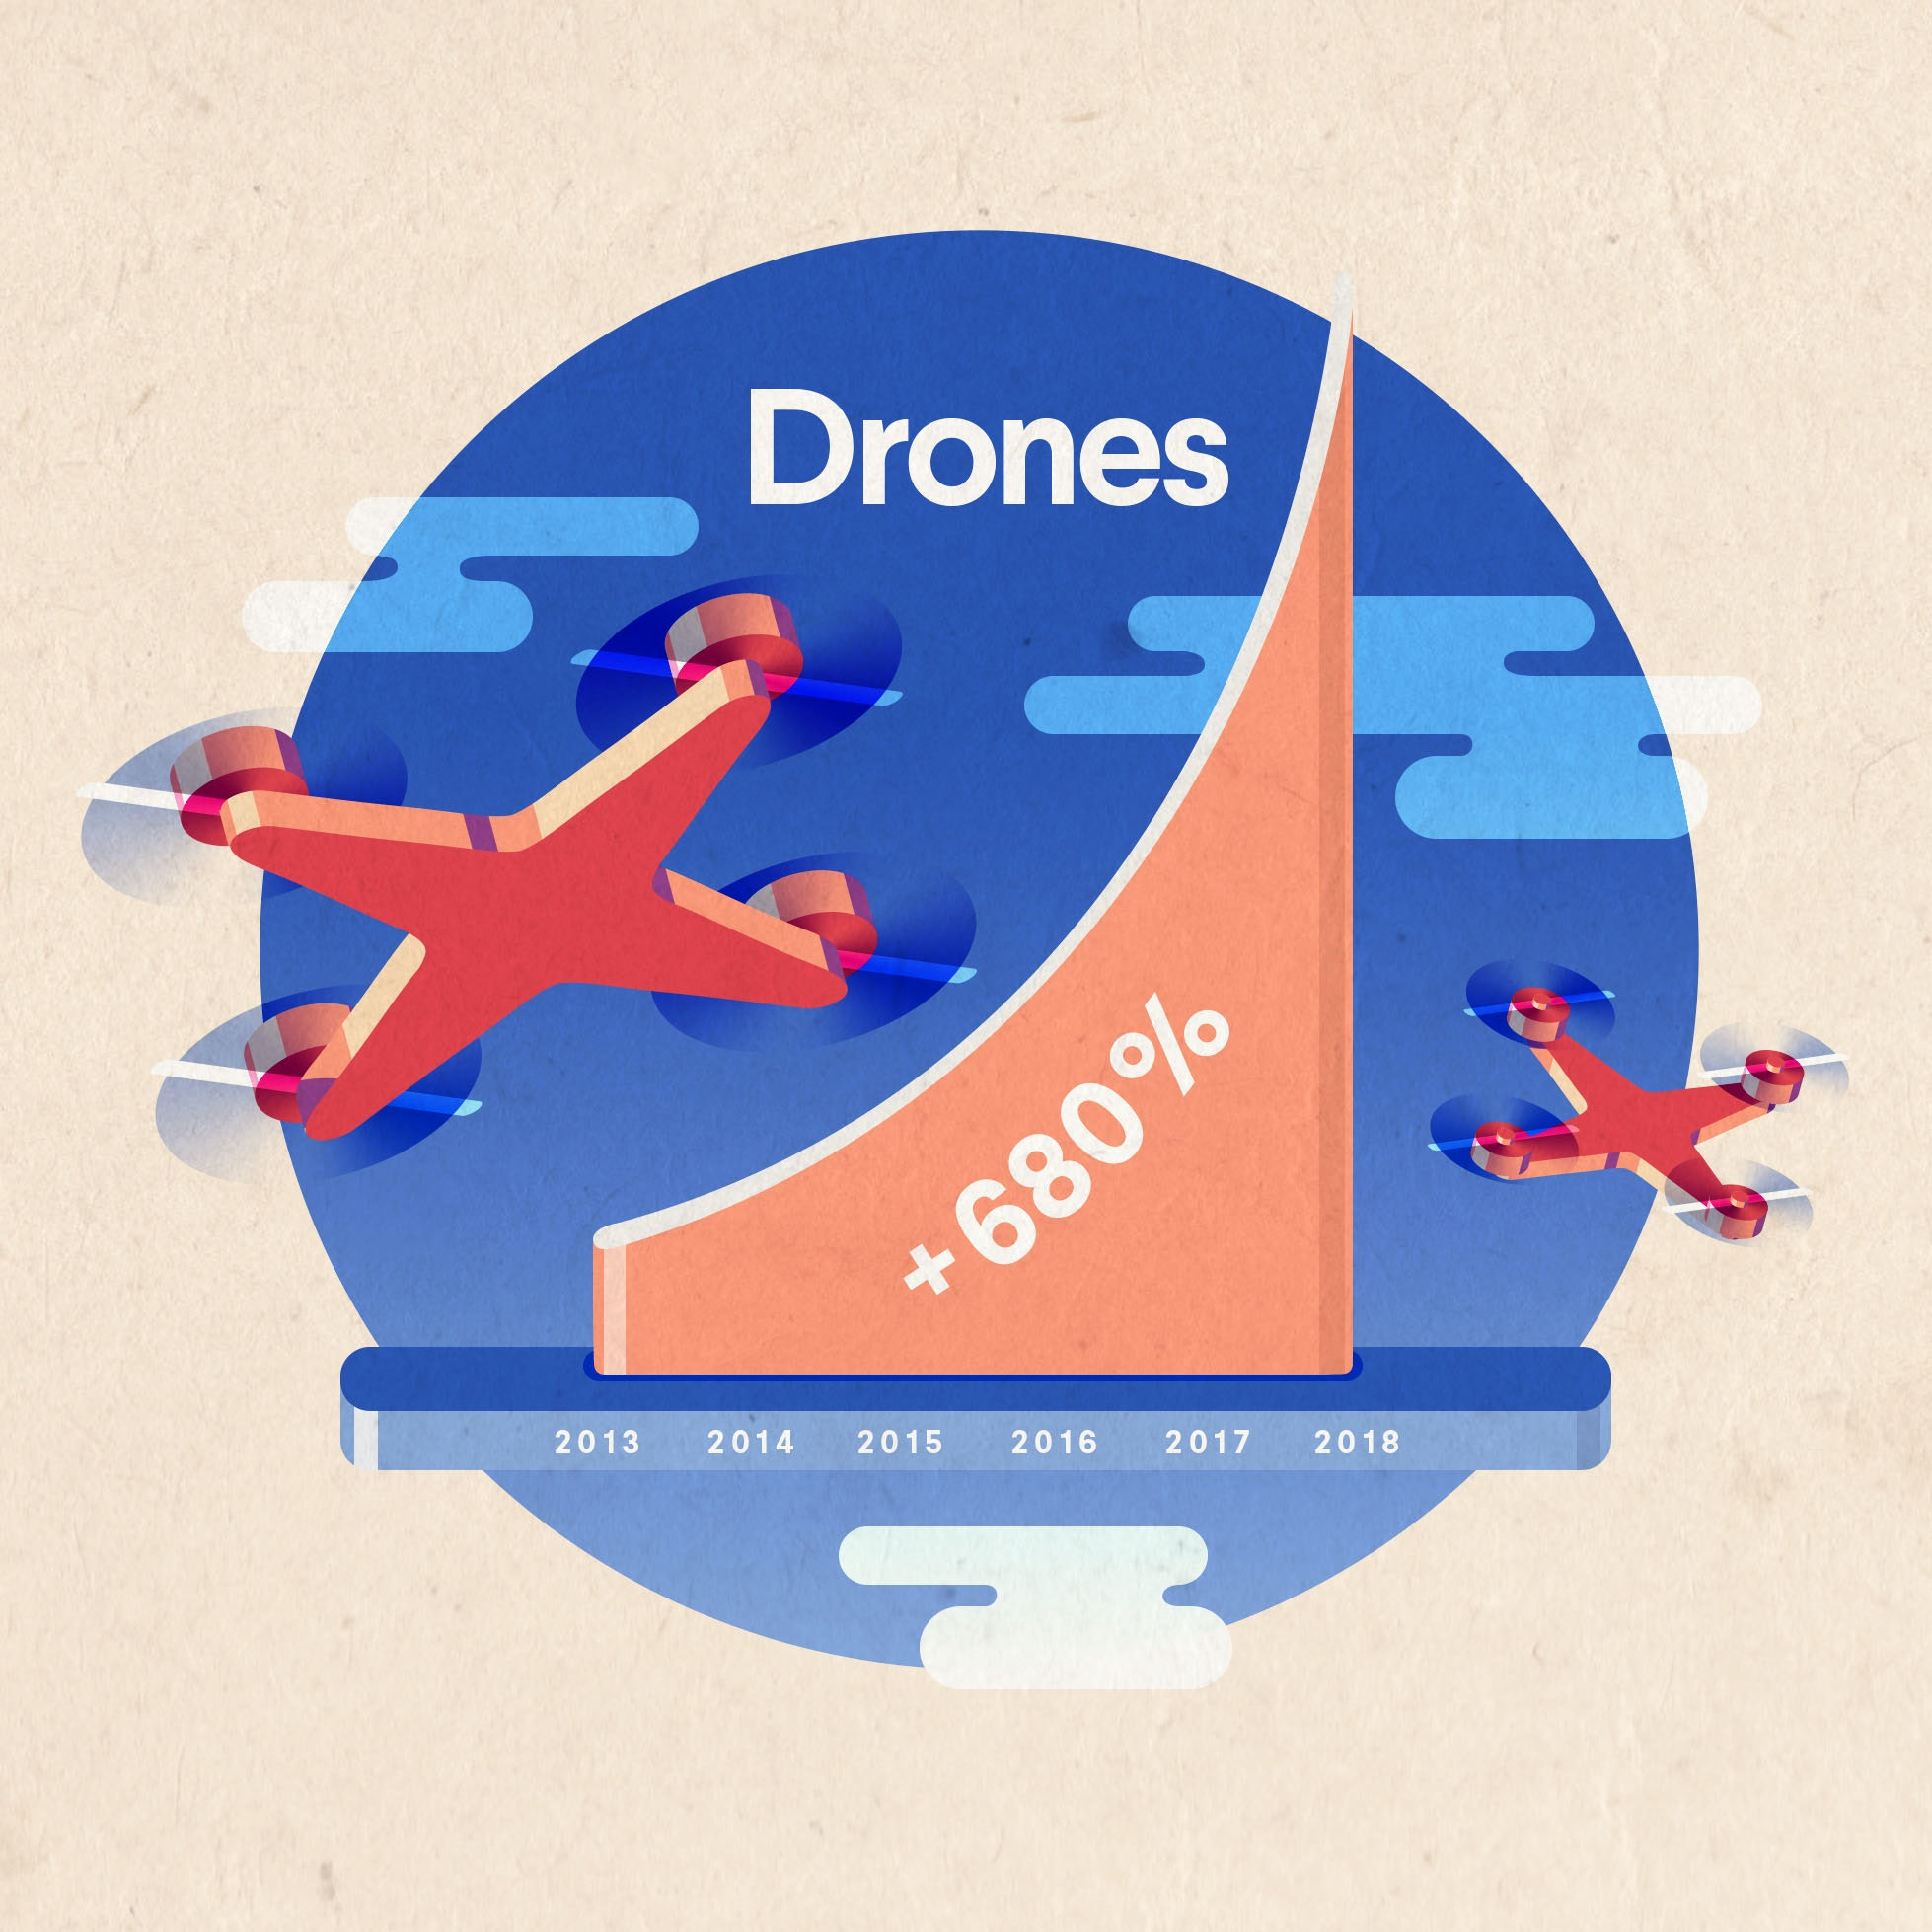 drone industry growth from 2013 to 2018